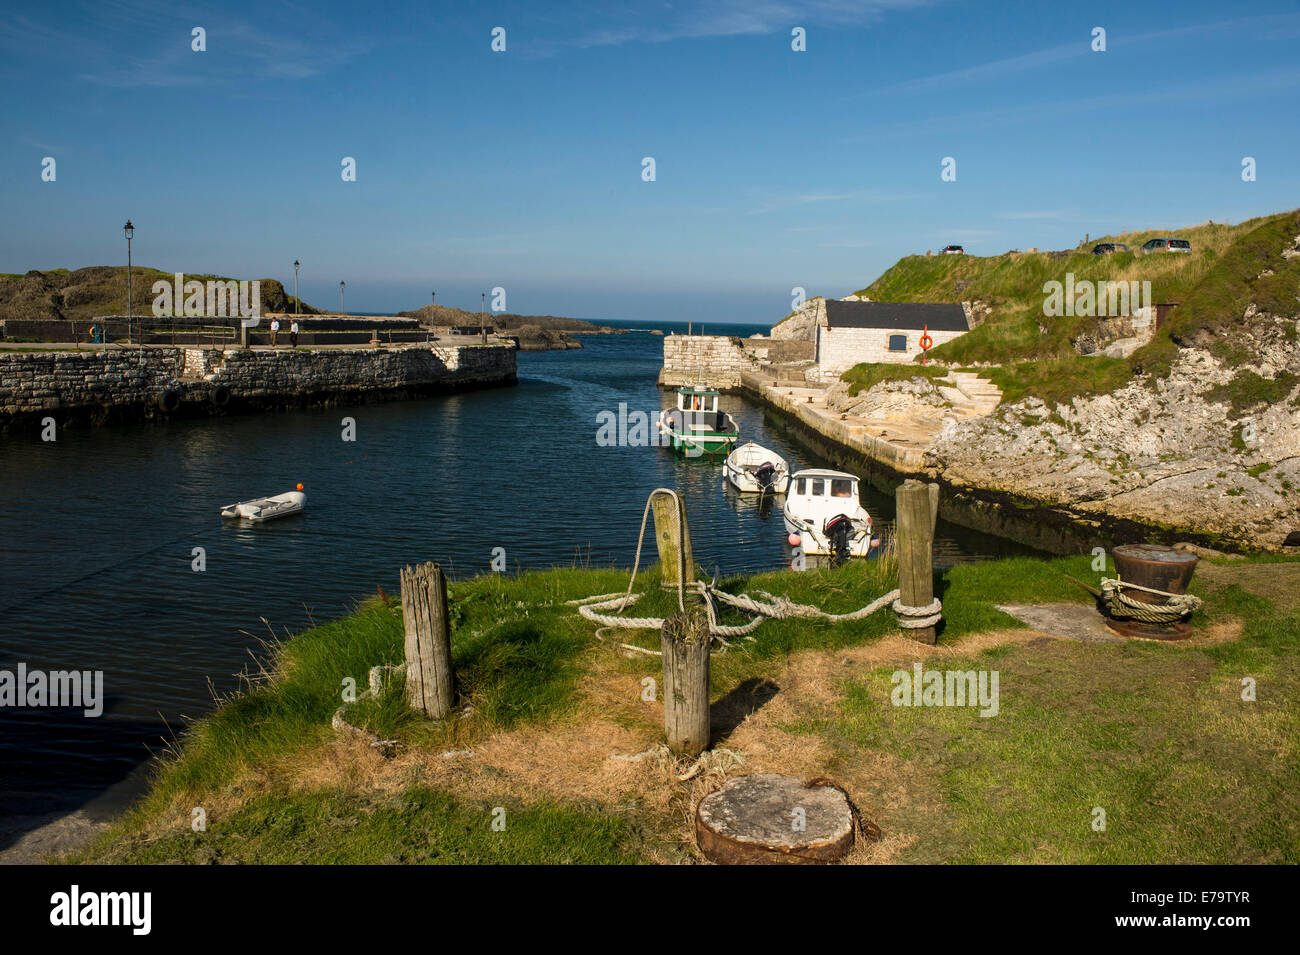 Ballintoy, County Antrim, Northern Ireland. 10th Sep, 2014. A warm sunny day at Ballintoy Harbour, Country Antrim. Stock Photo